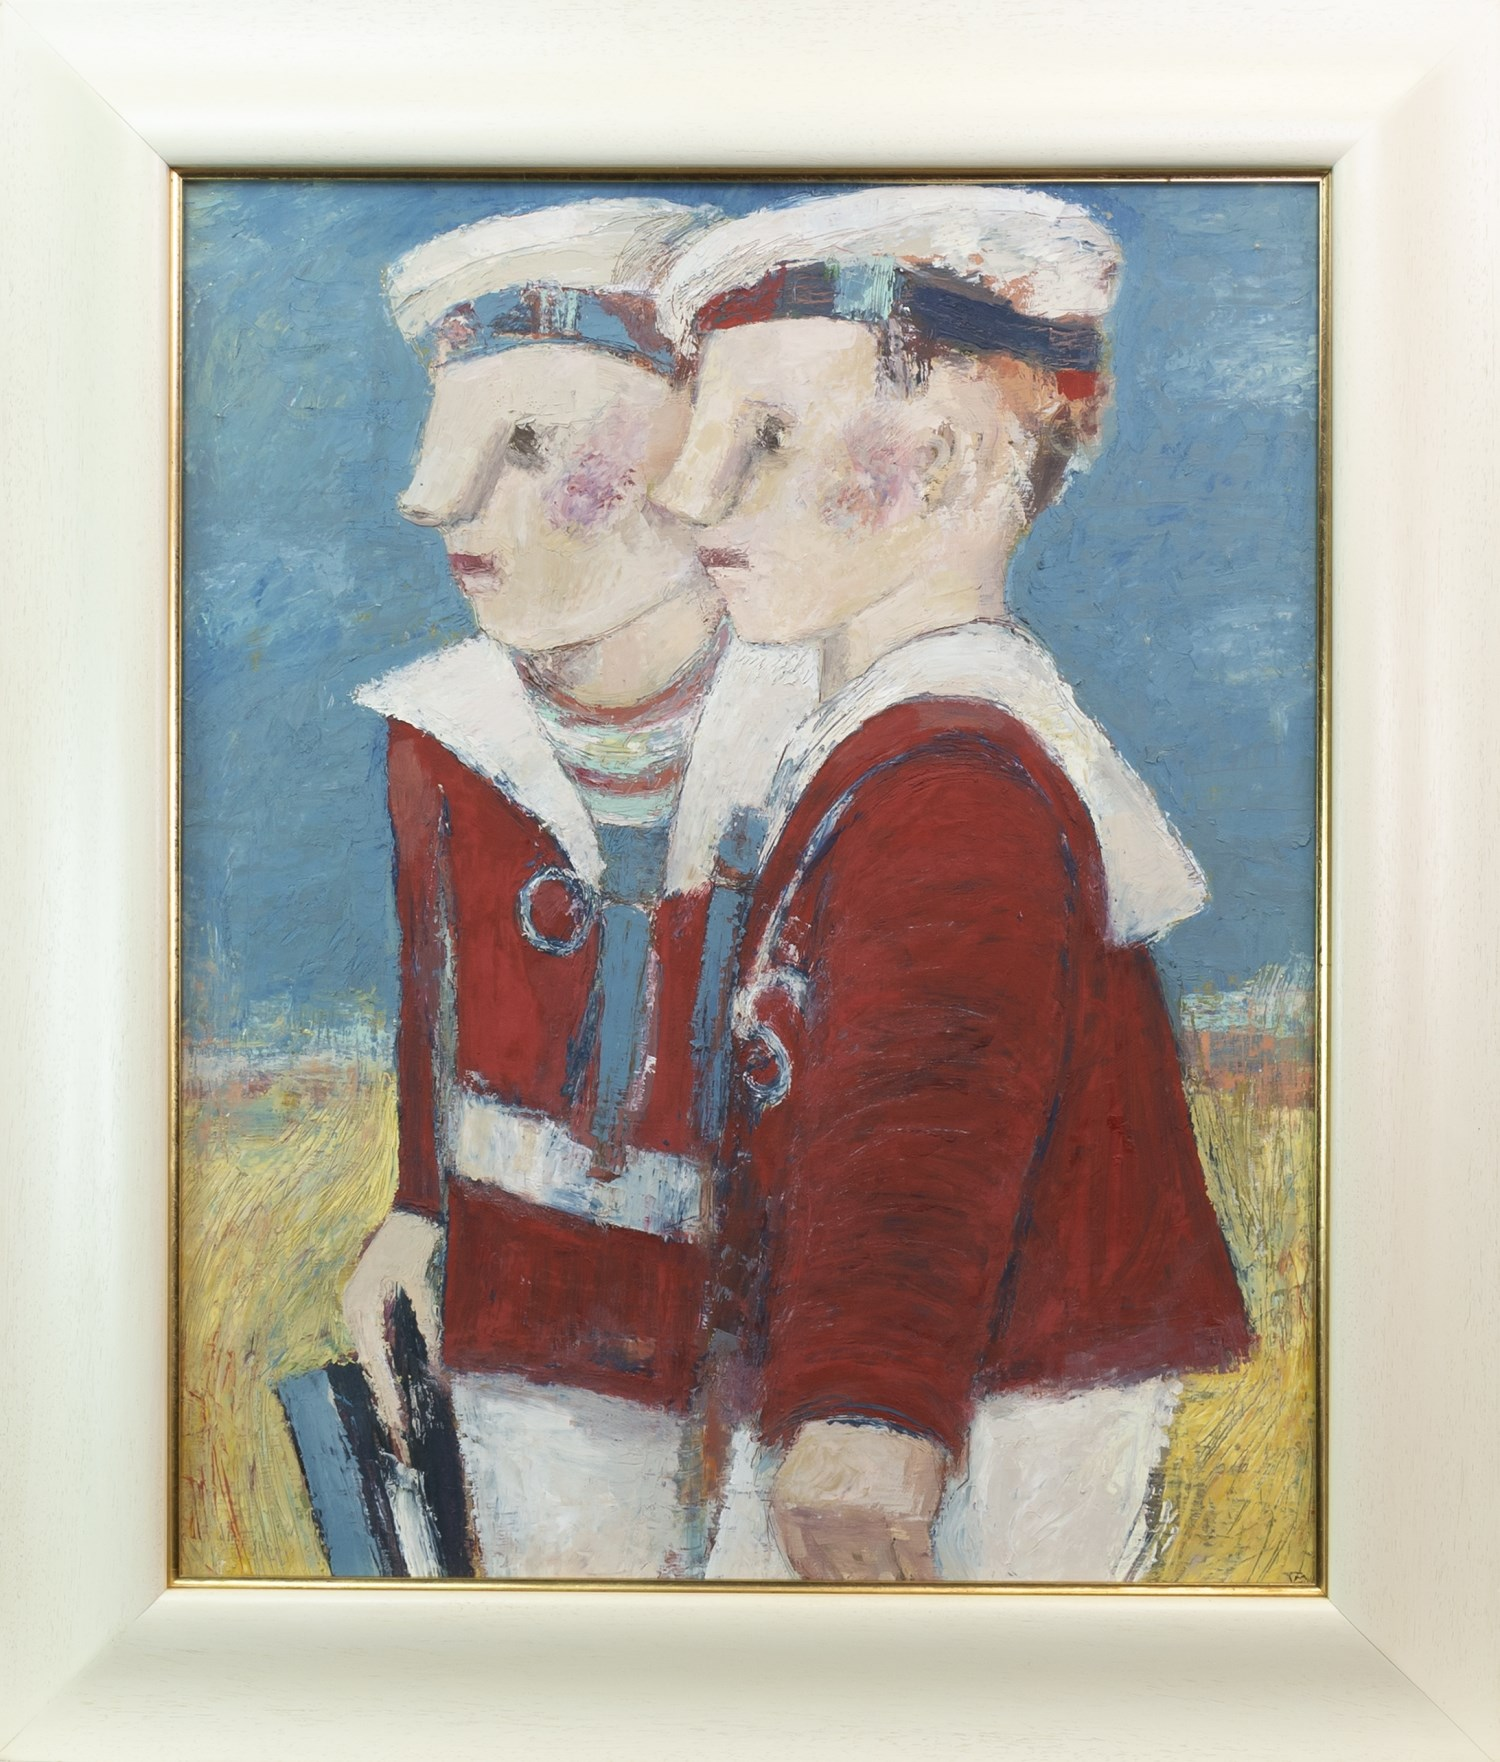 Lot 49 - THE YOUNG MARINERS, AN OIL ON CANVAS BY CATRIONA MILLER